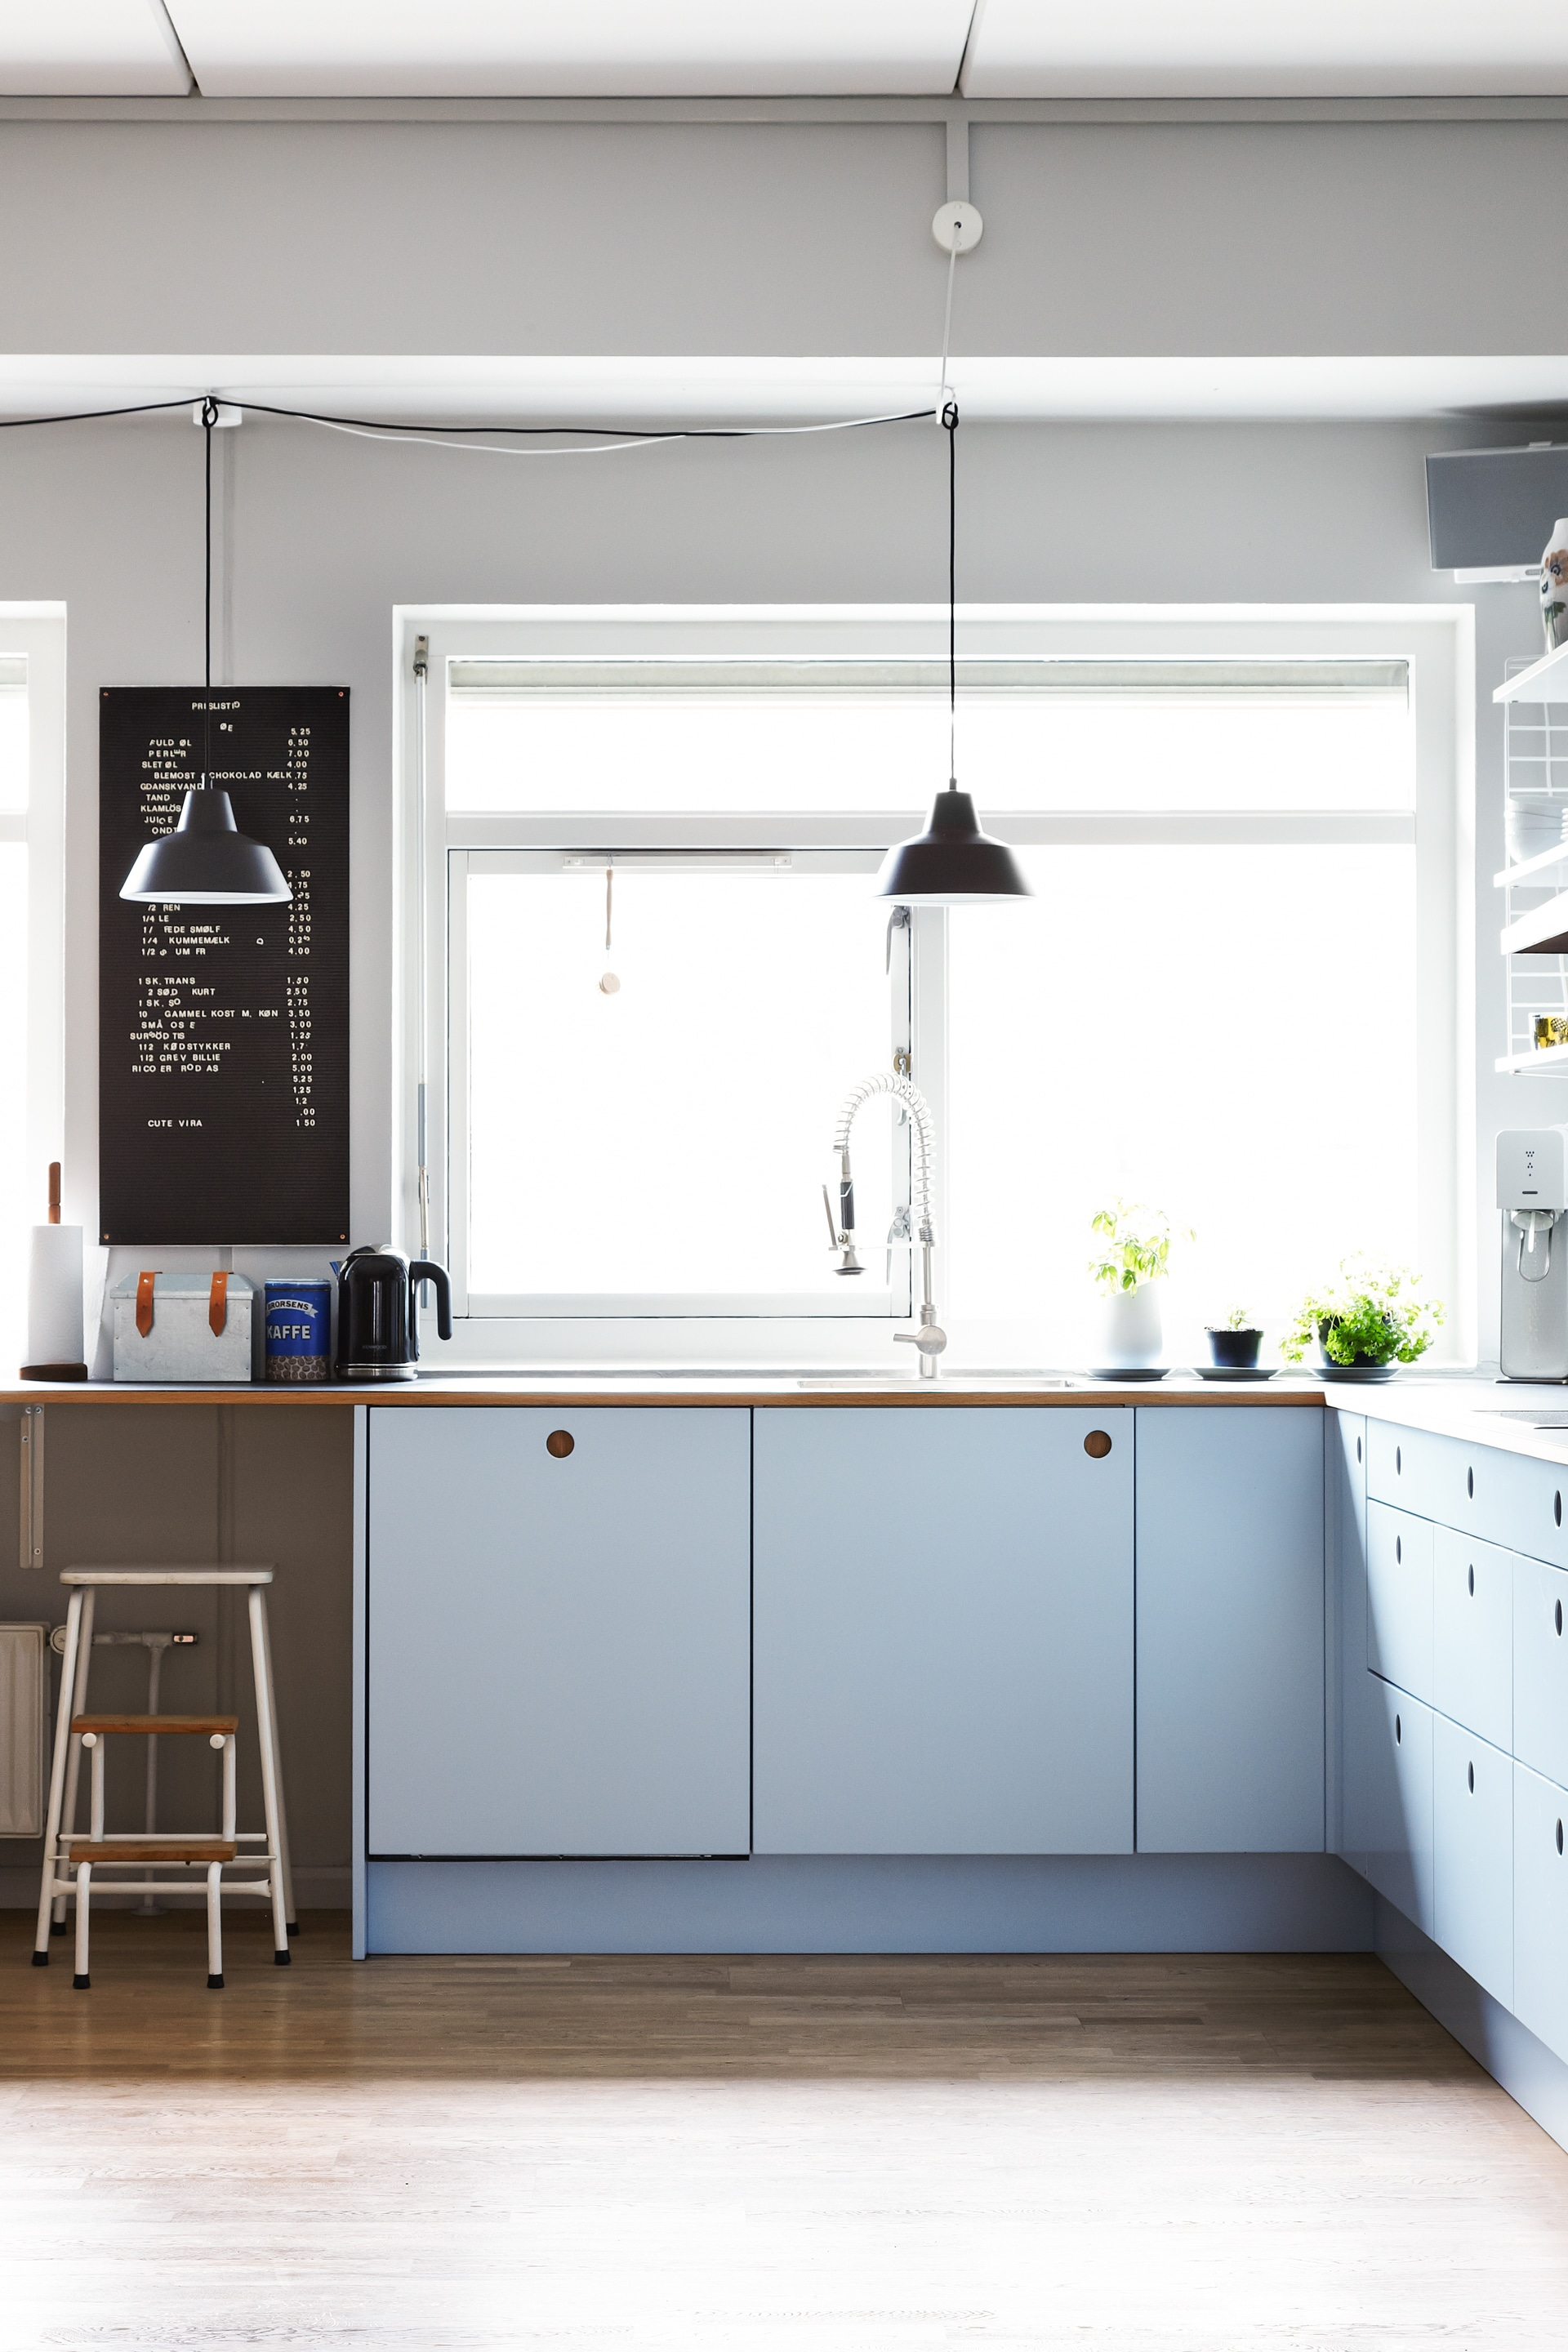 Homestory: Zu Besuch bei Julie in Kopenhagen by eat blog love